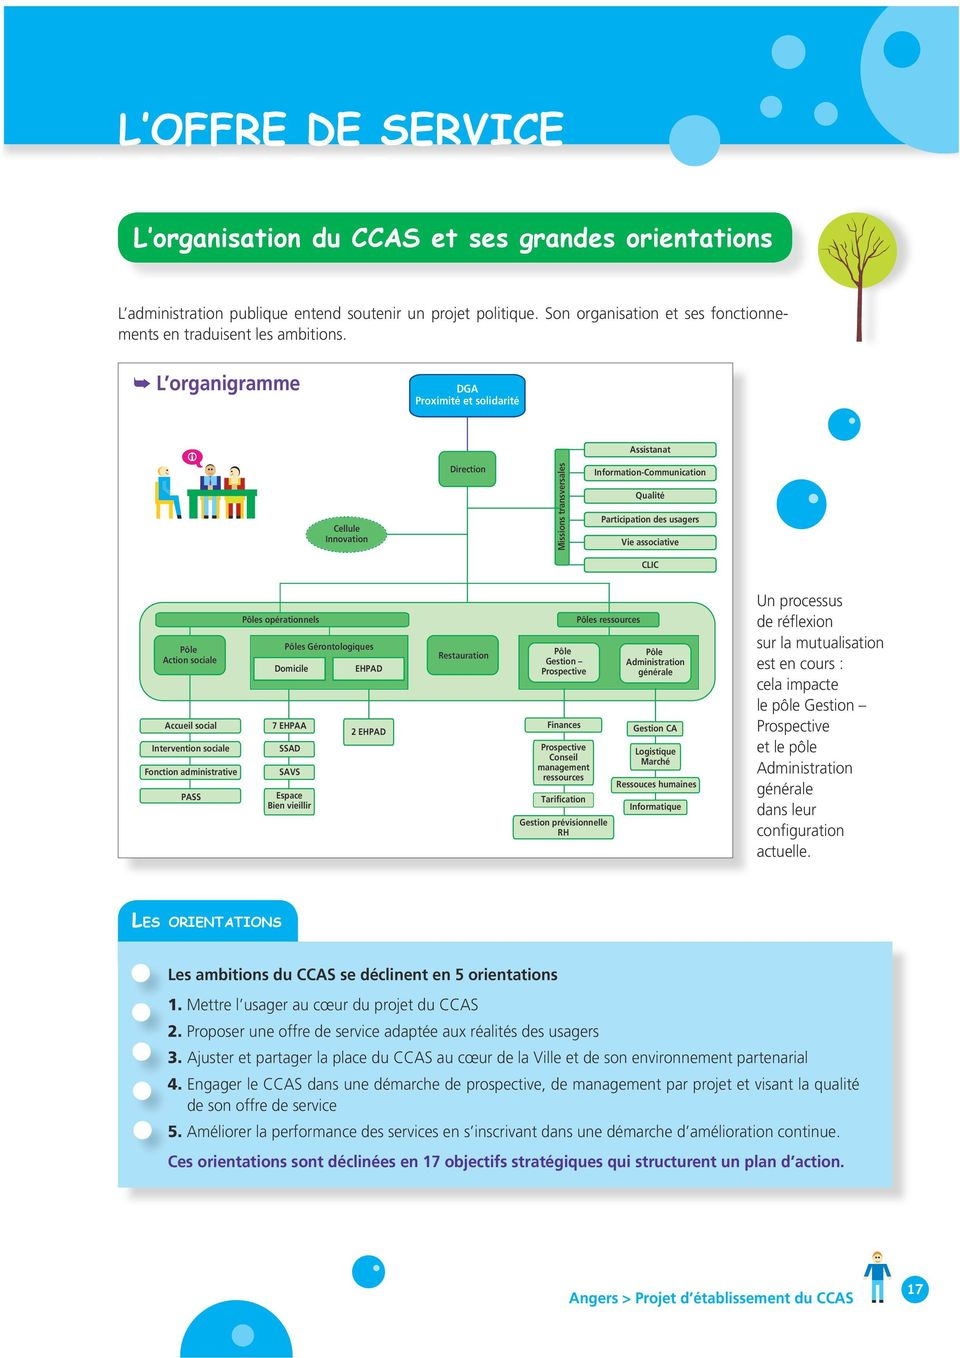 L organigramme DGA Proximité et solidarité Assistanat Cellule Innovation Direction Missions transversales Information-Communication Qualité Participation des usagers Vie associative CLIC Pôle Action